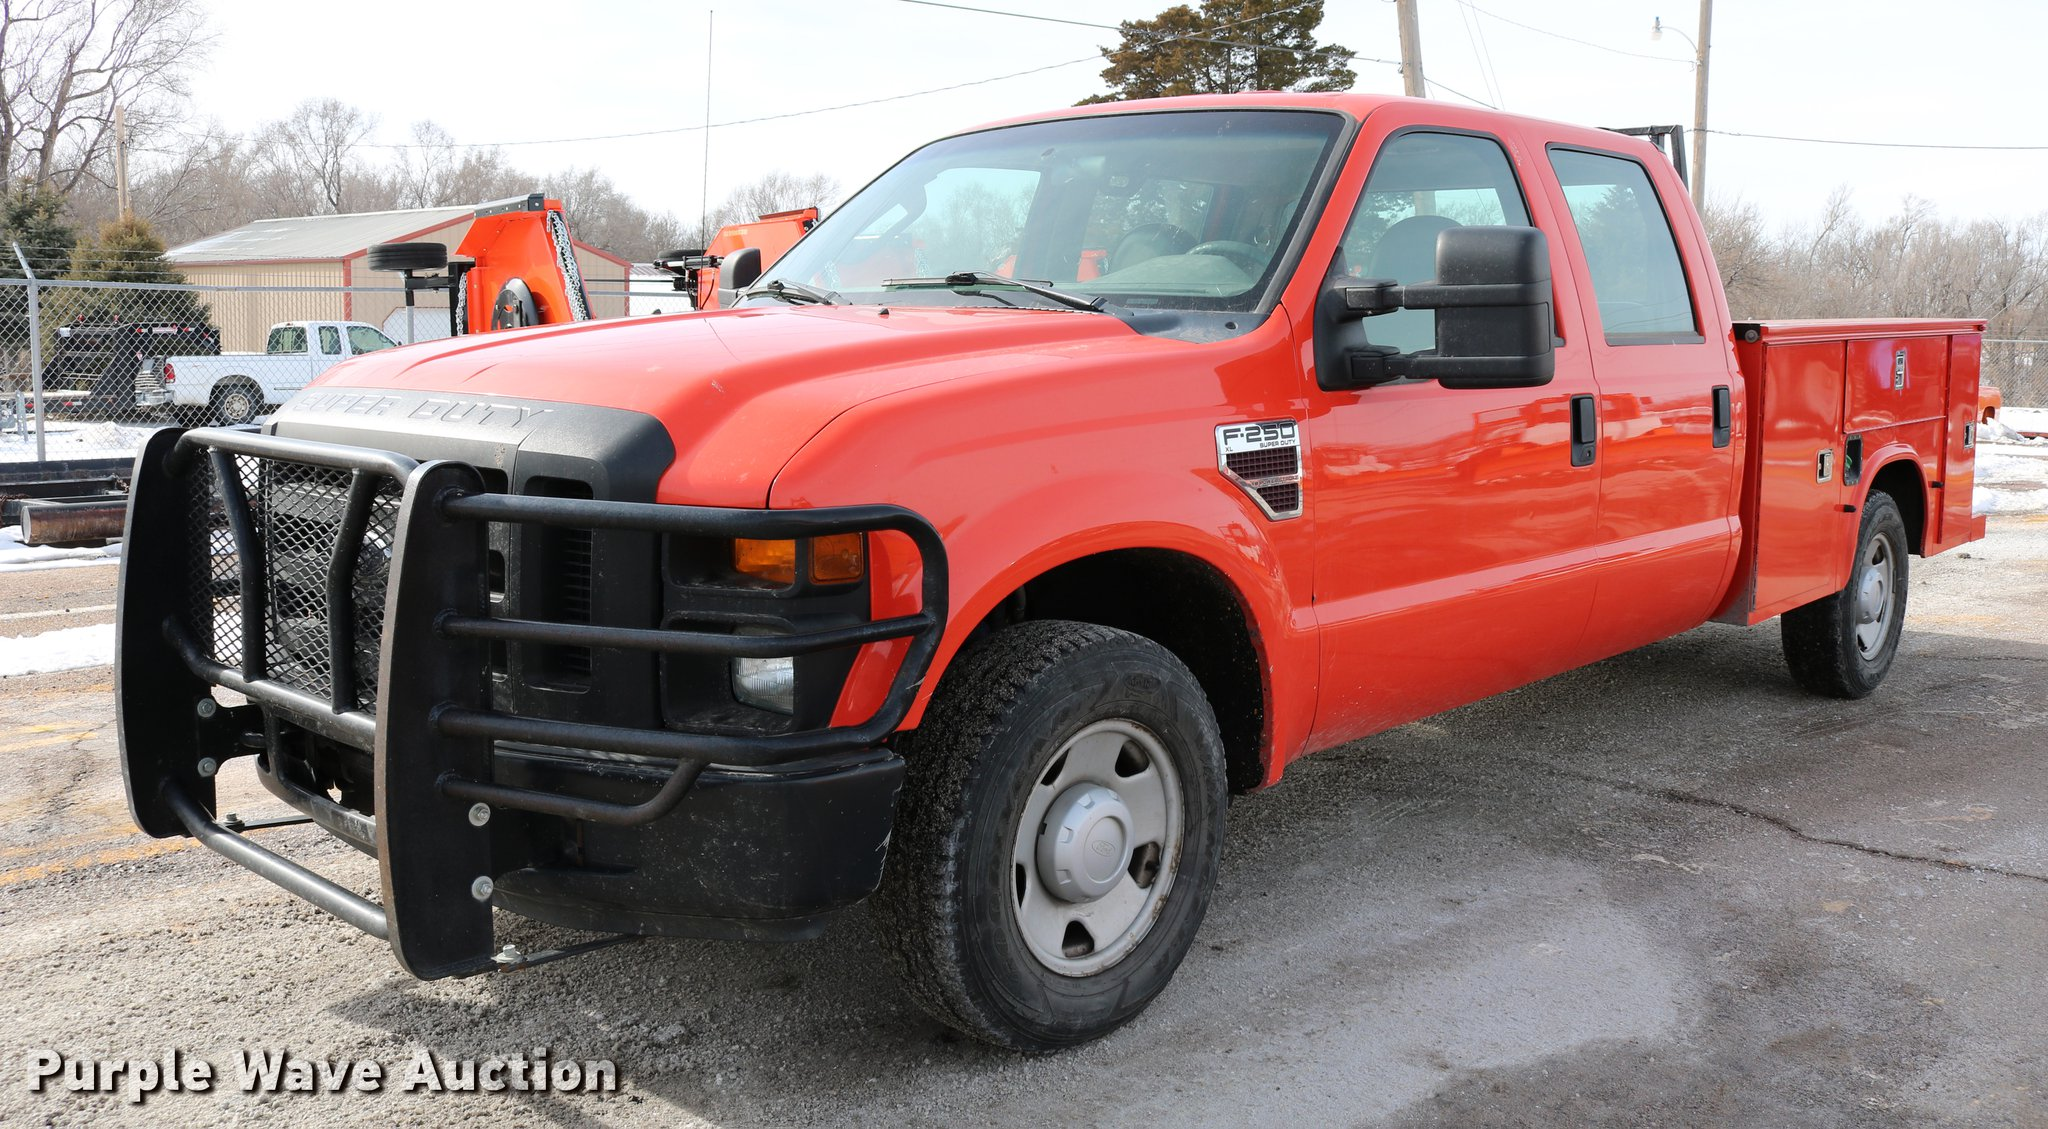 2008 Ford F250 Super Duty Utility Bed Pickup Truck Item Dd